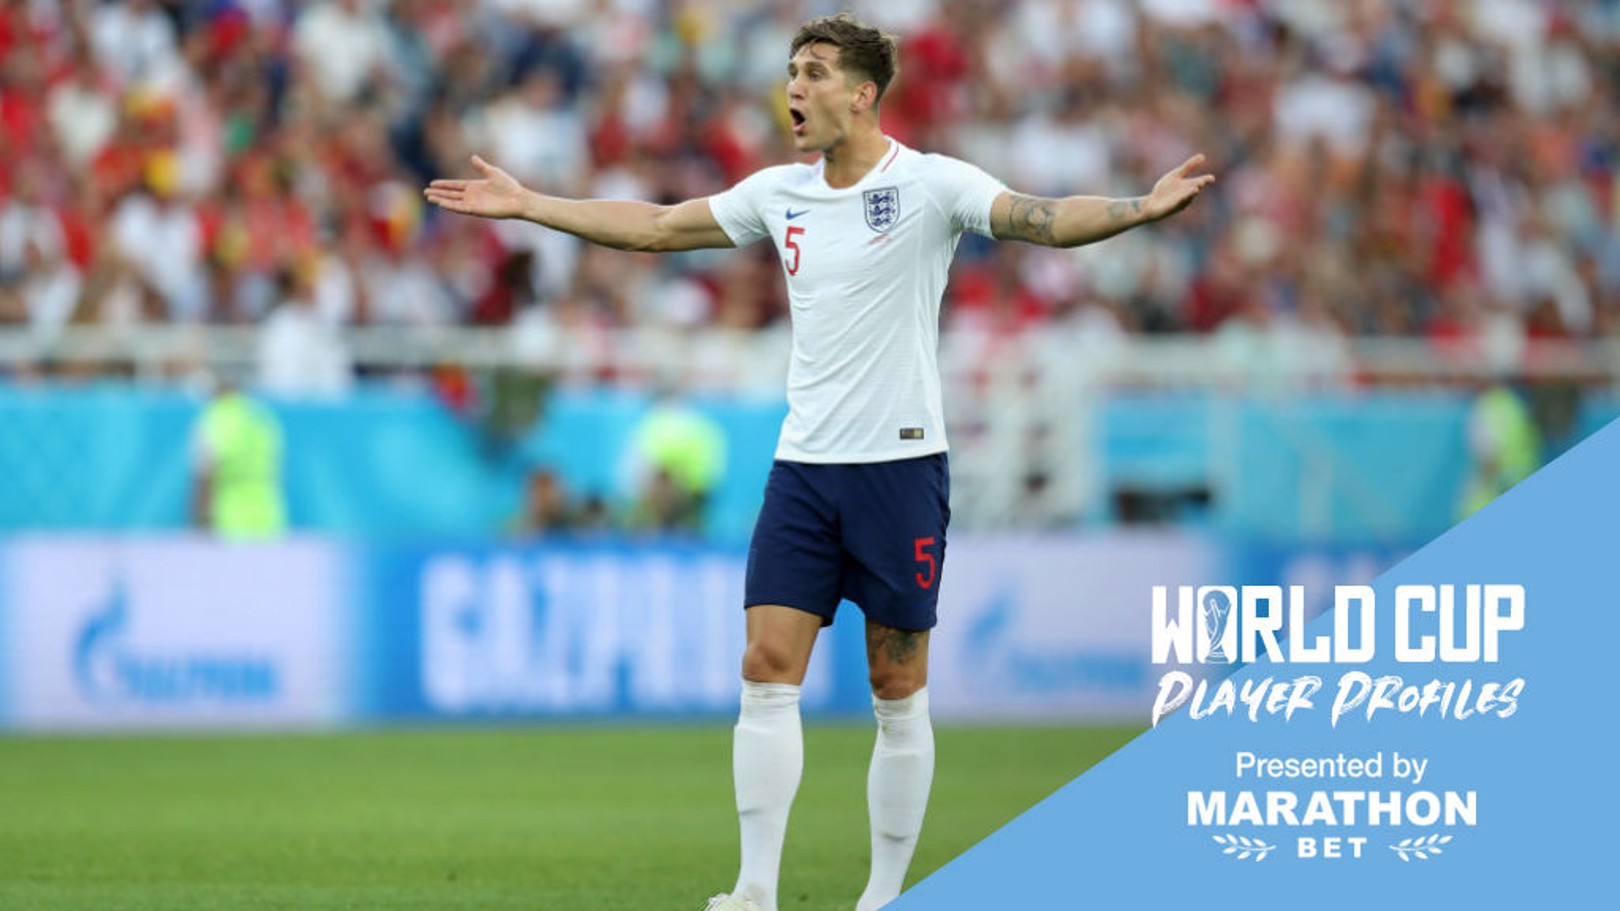 RUSSIA 2018: John Stones has started all three of England's World Cup matches so far